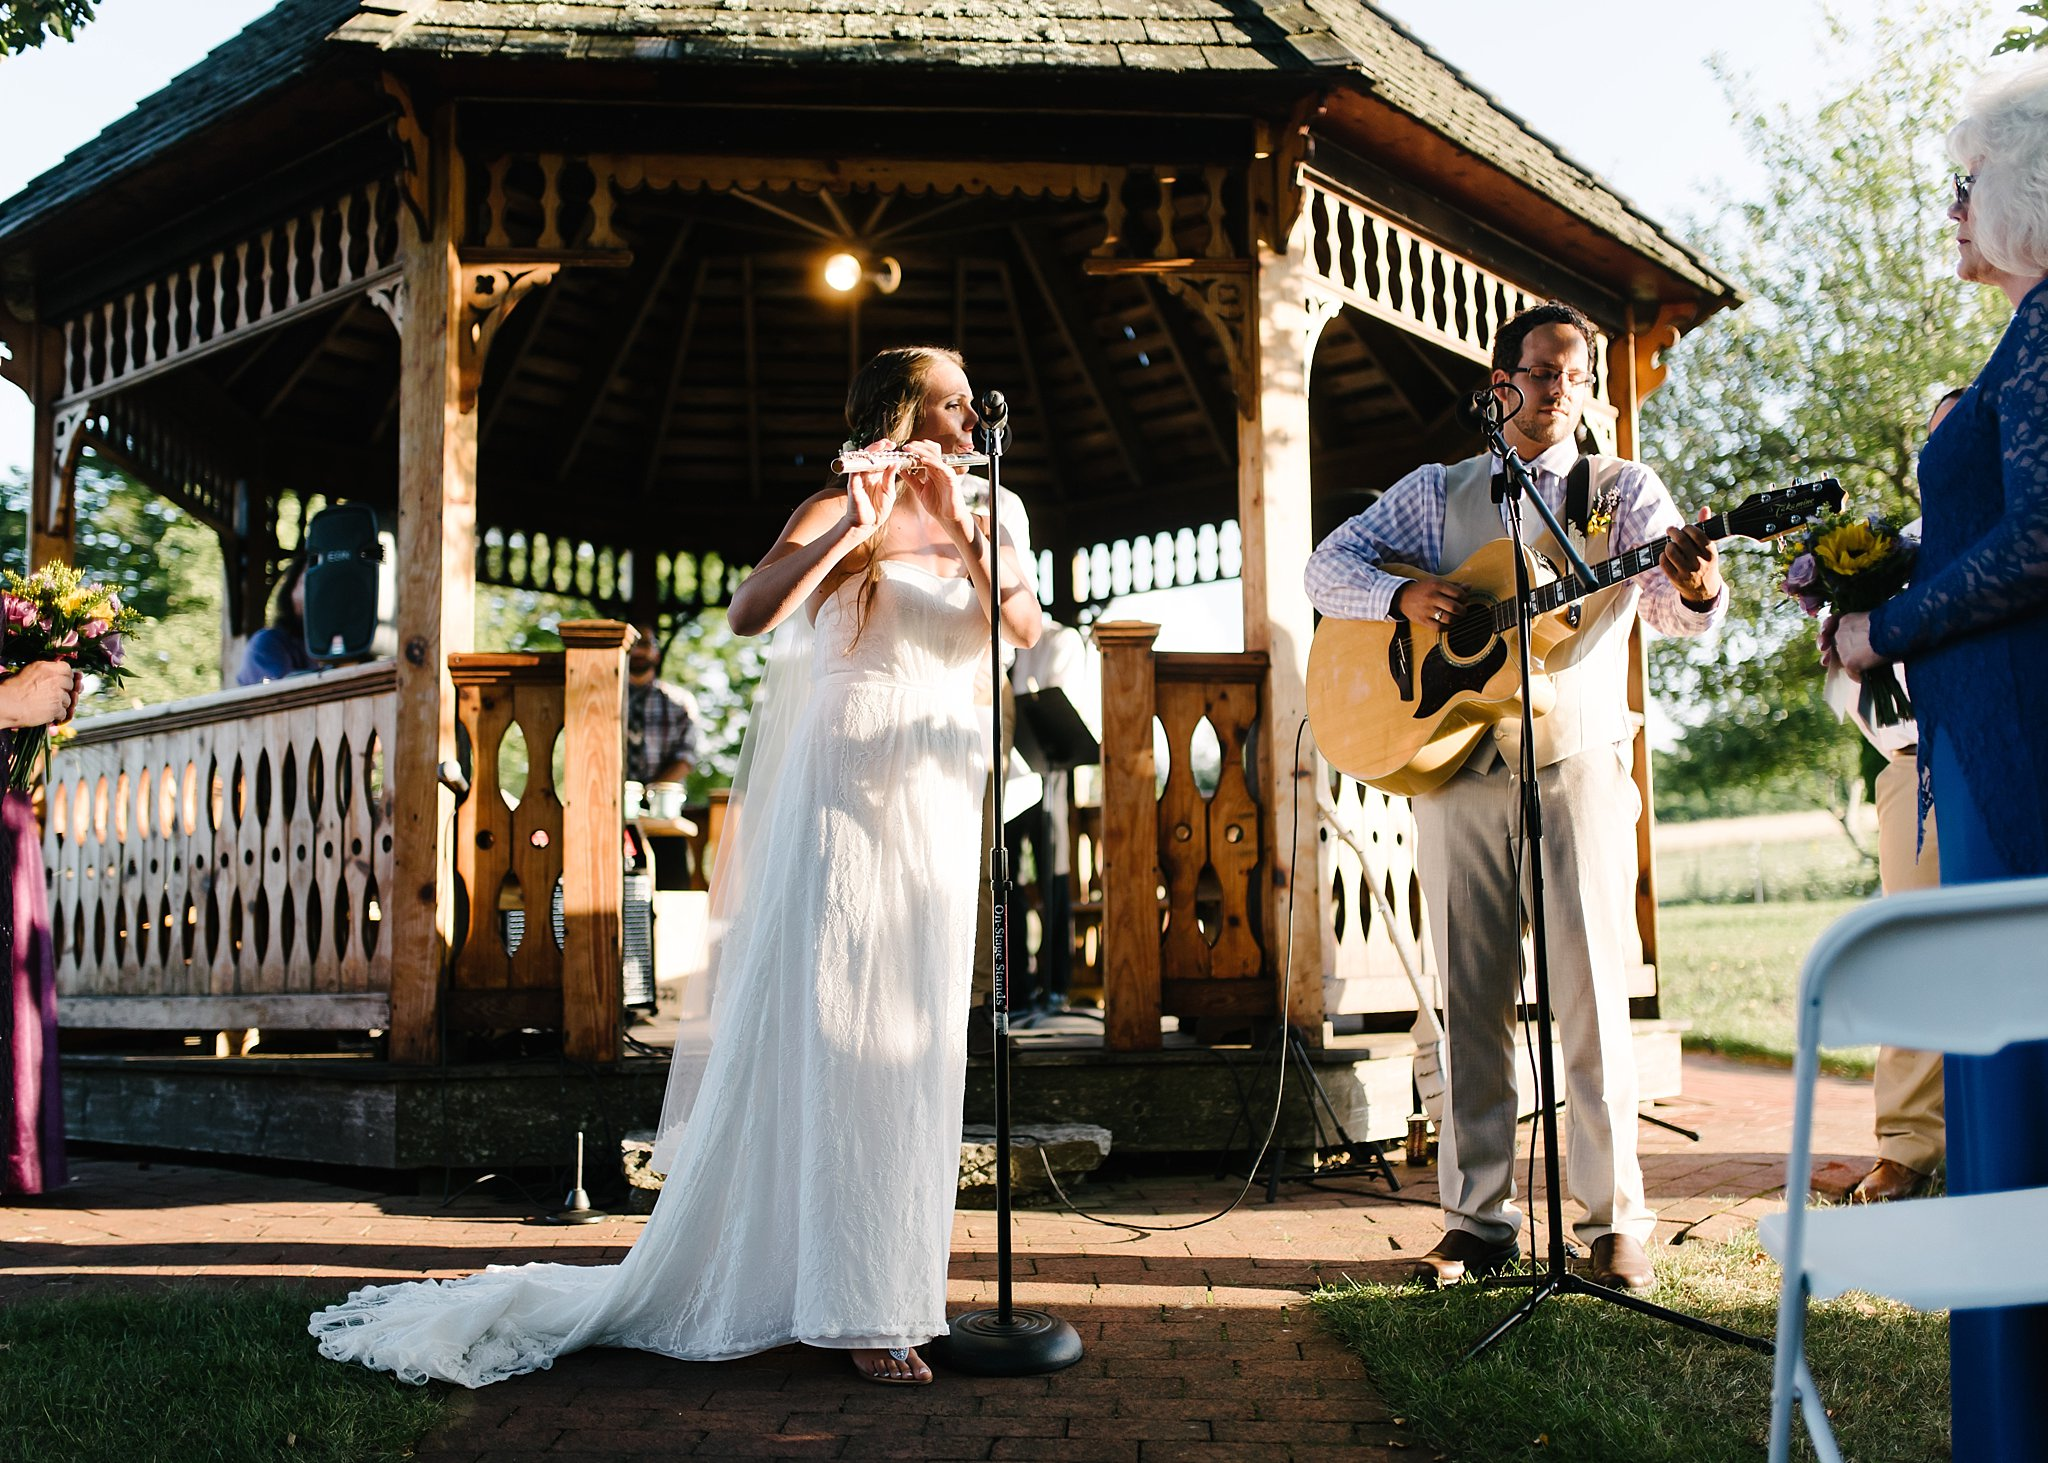 intimate wedding at spencer country inn.jpg